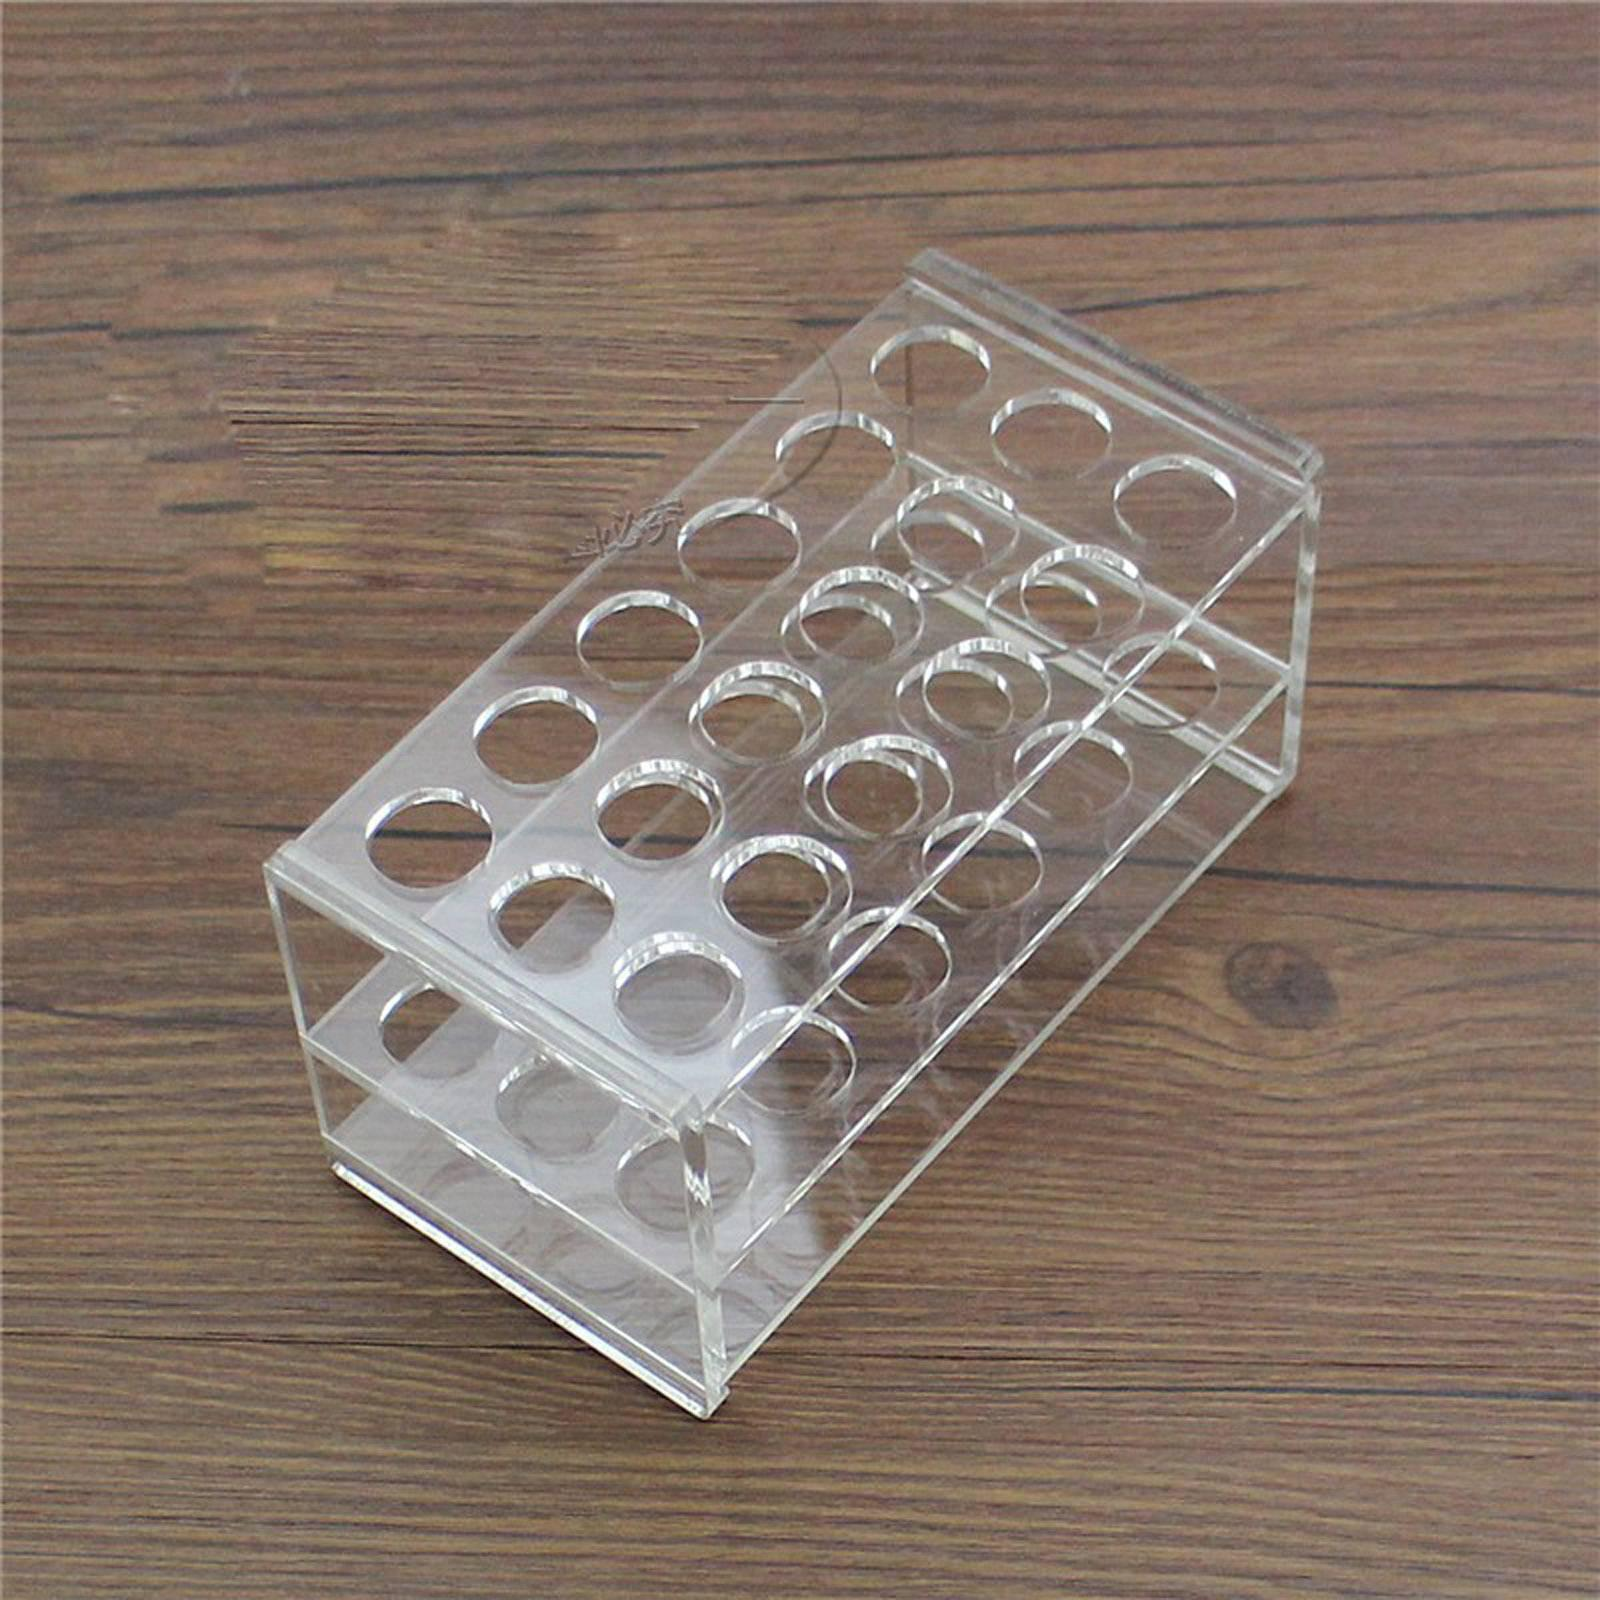 17mm Diam 18 Holes Methyl Methacrylate Rack Stand For 10/15ml Centrifuge Tubes